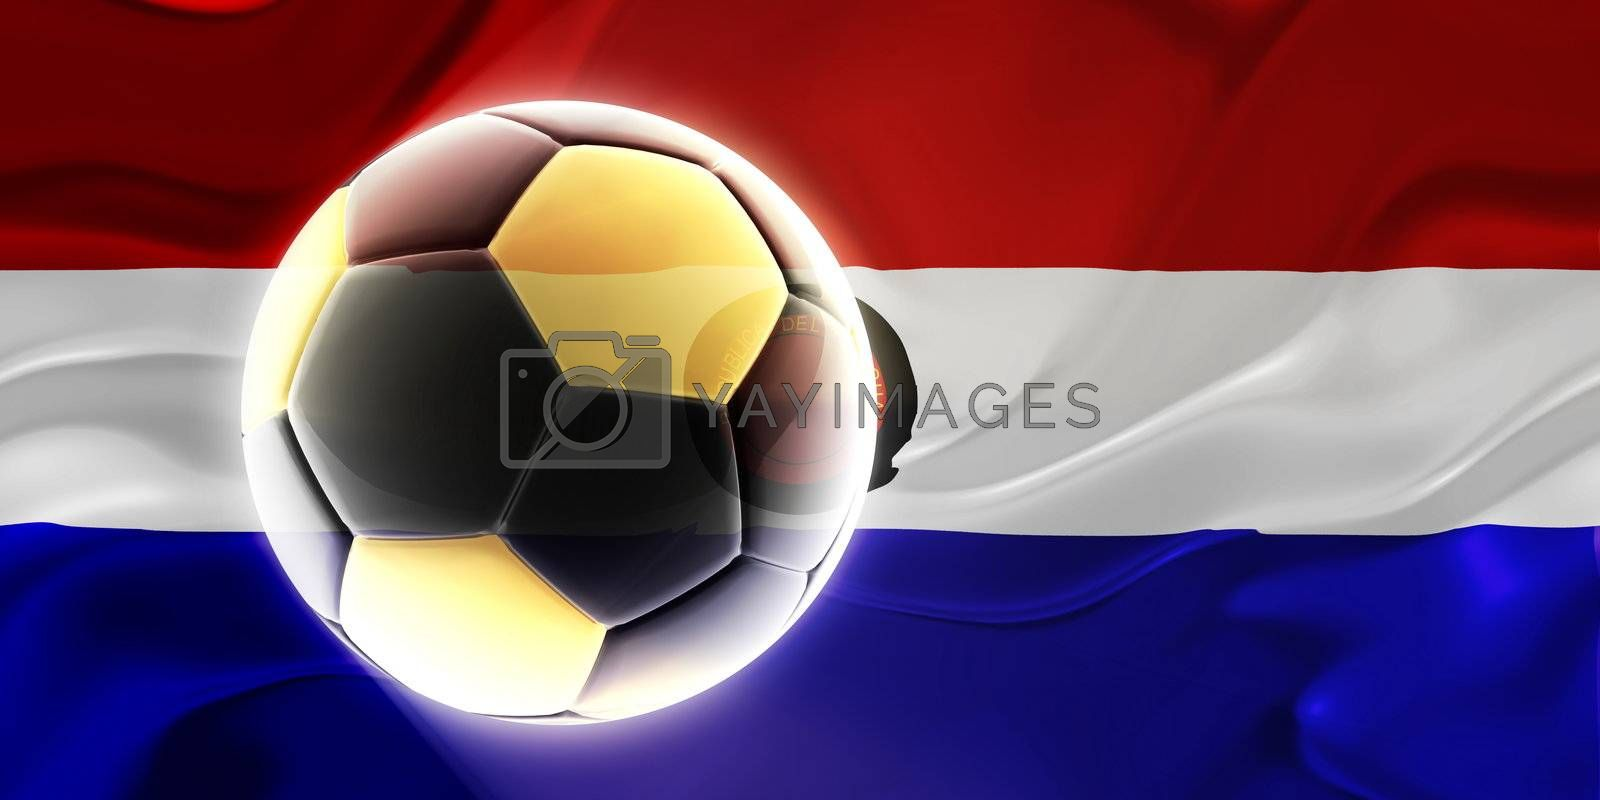 Flag of Paraguay, national country symbol illustration wavy fabric sports soccer football